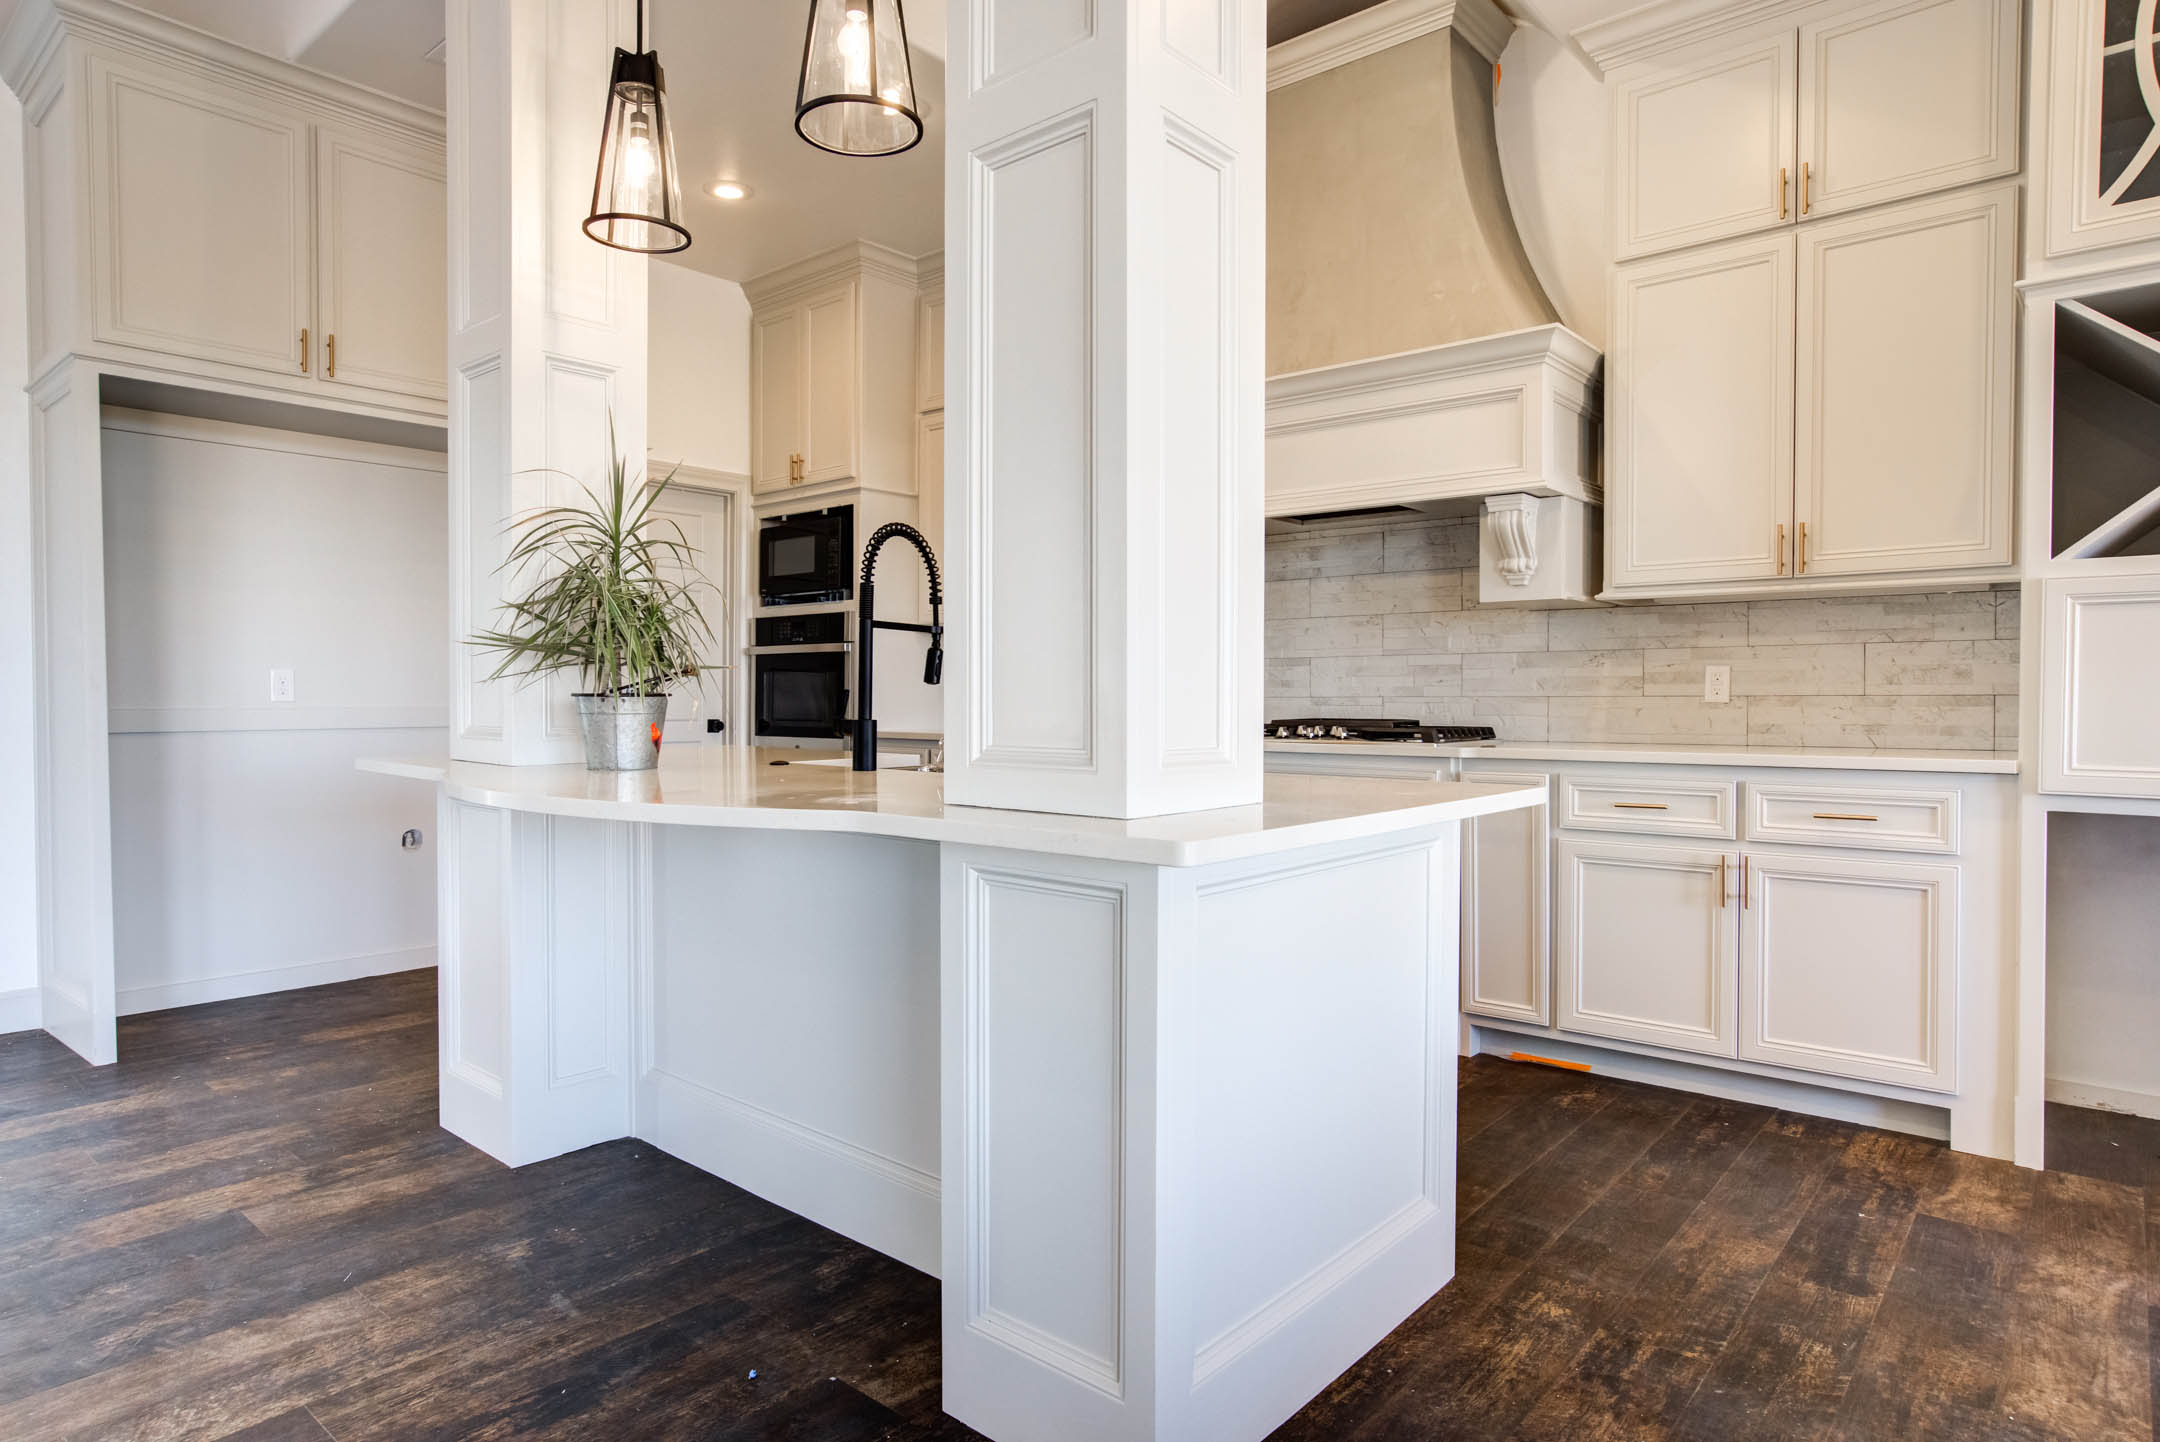 Kitchen in new home for sale near Lubbock, Texas.